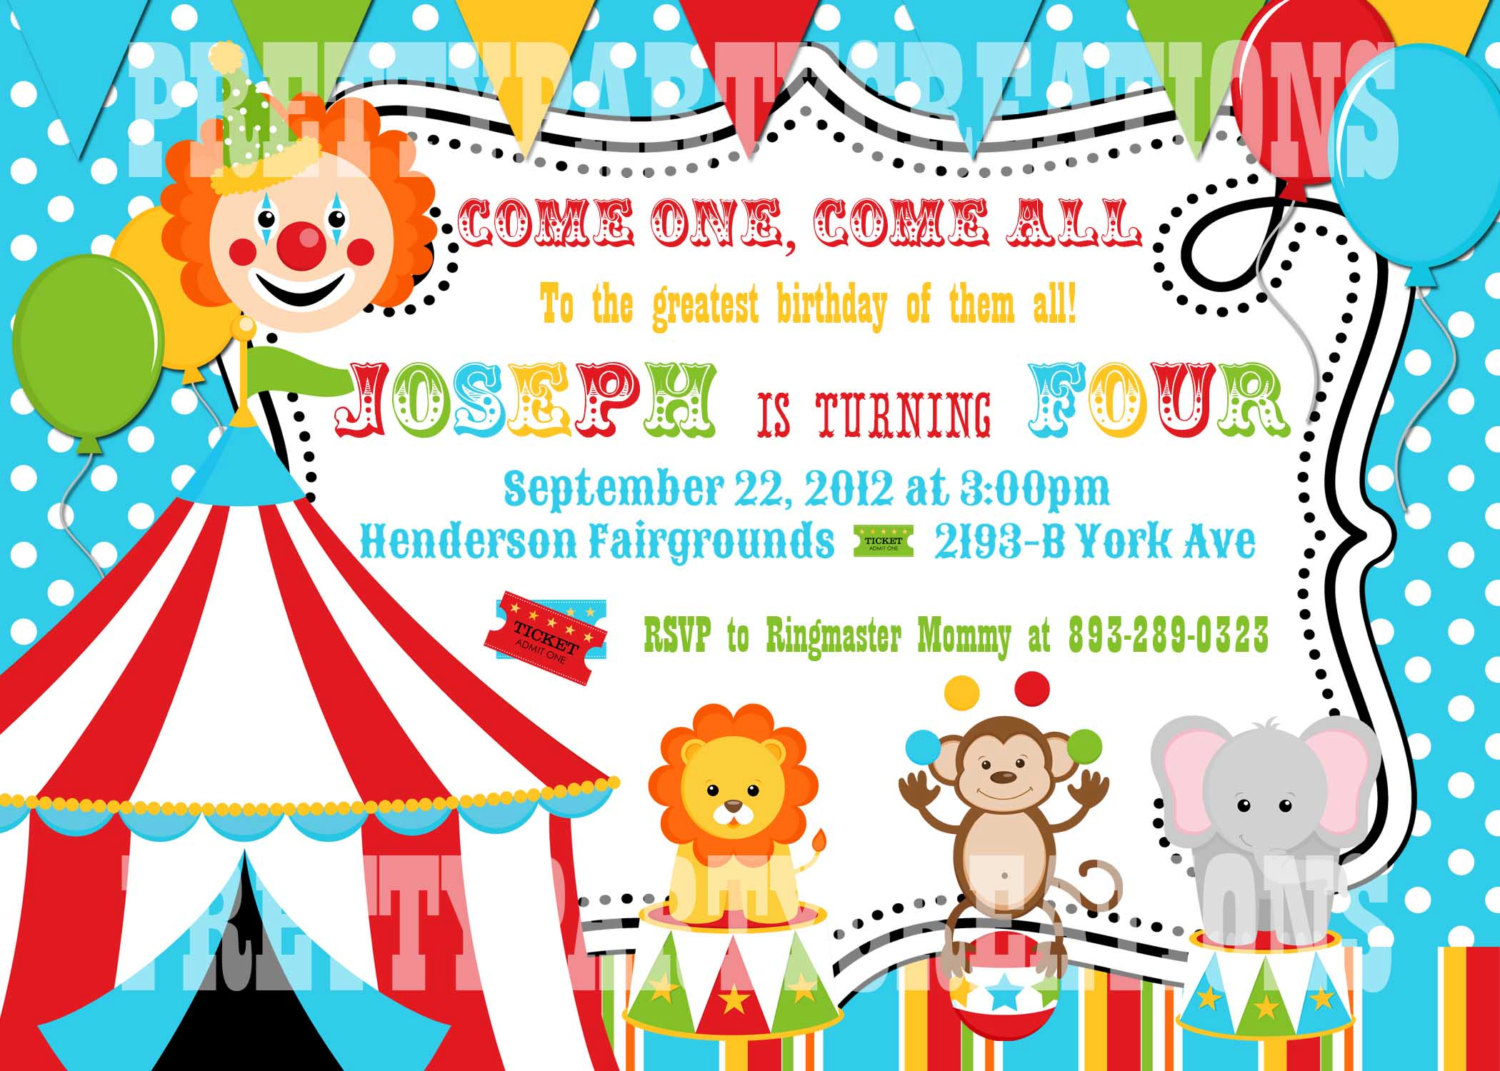 carnival themed birthday party invitation wording ; Outstanding-Circus-Birthday-Invitations-Which-You-Need-To-Make-Custom-Birthday-Invitations